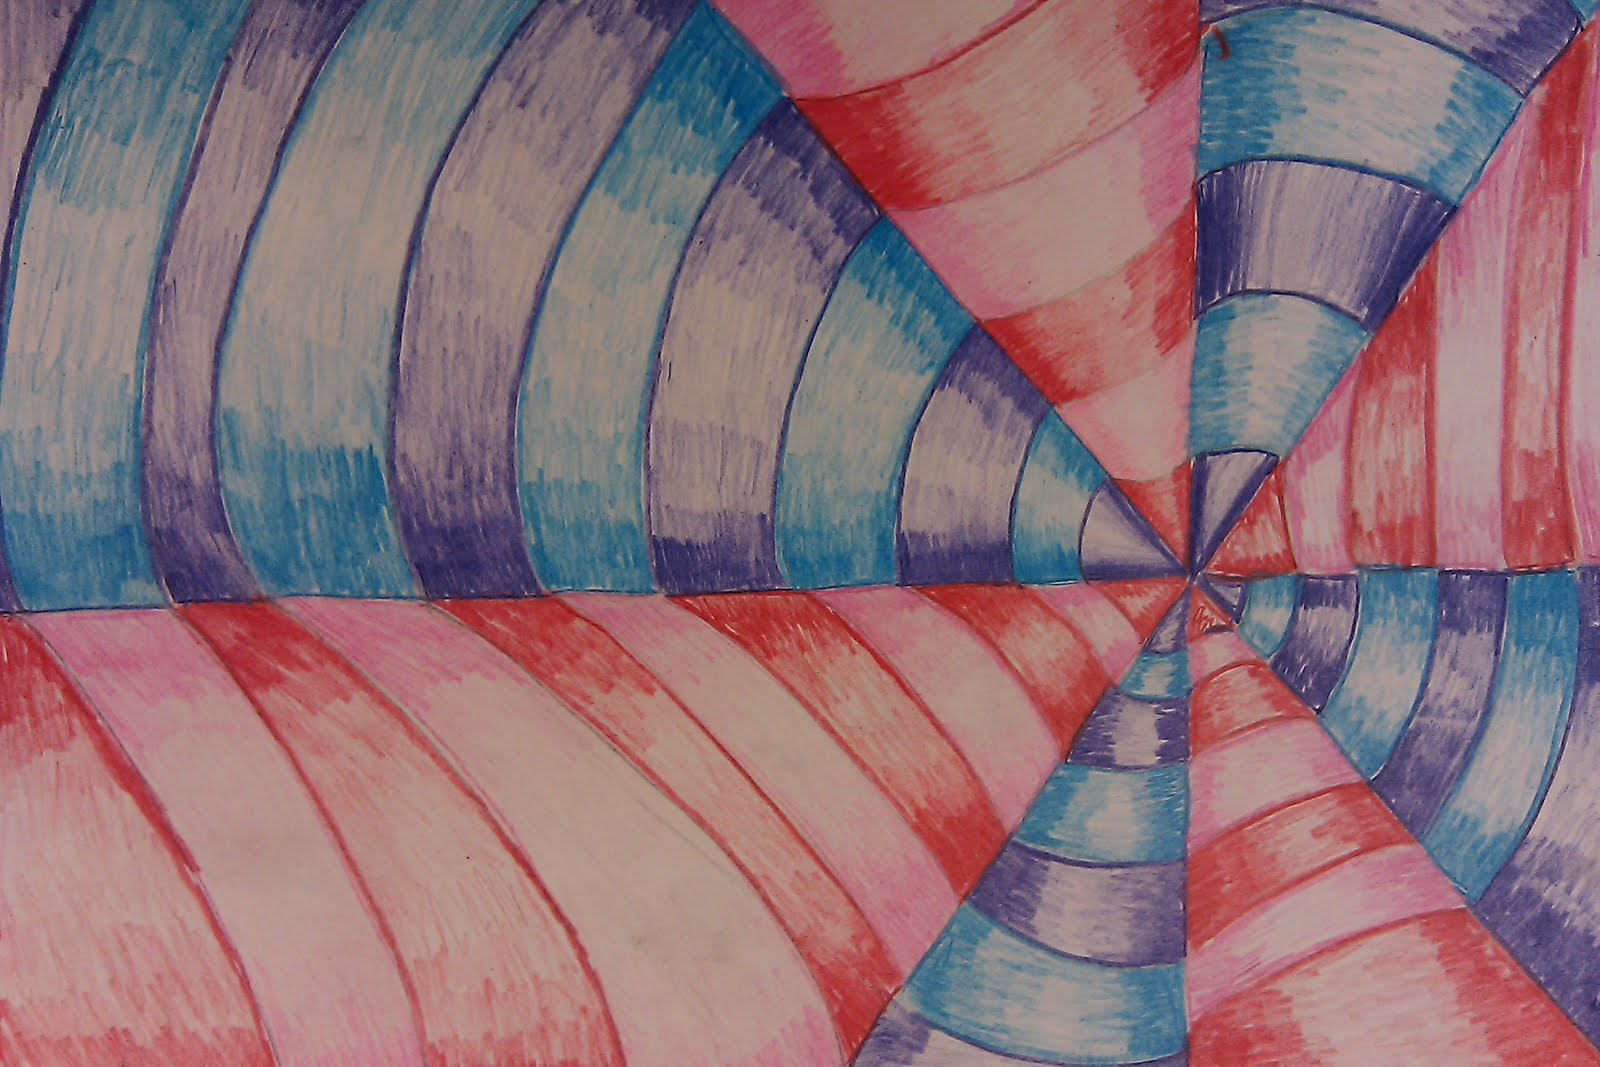 Draws Attention Op Art Learning Colors